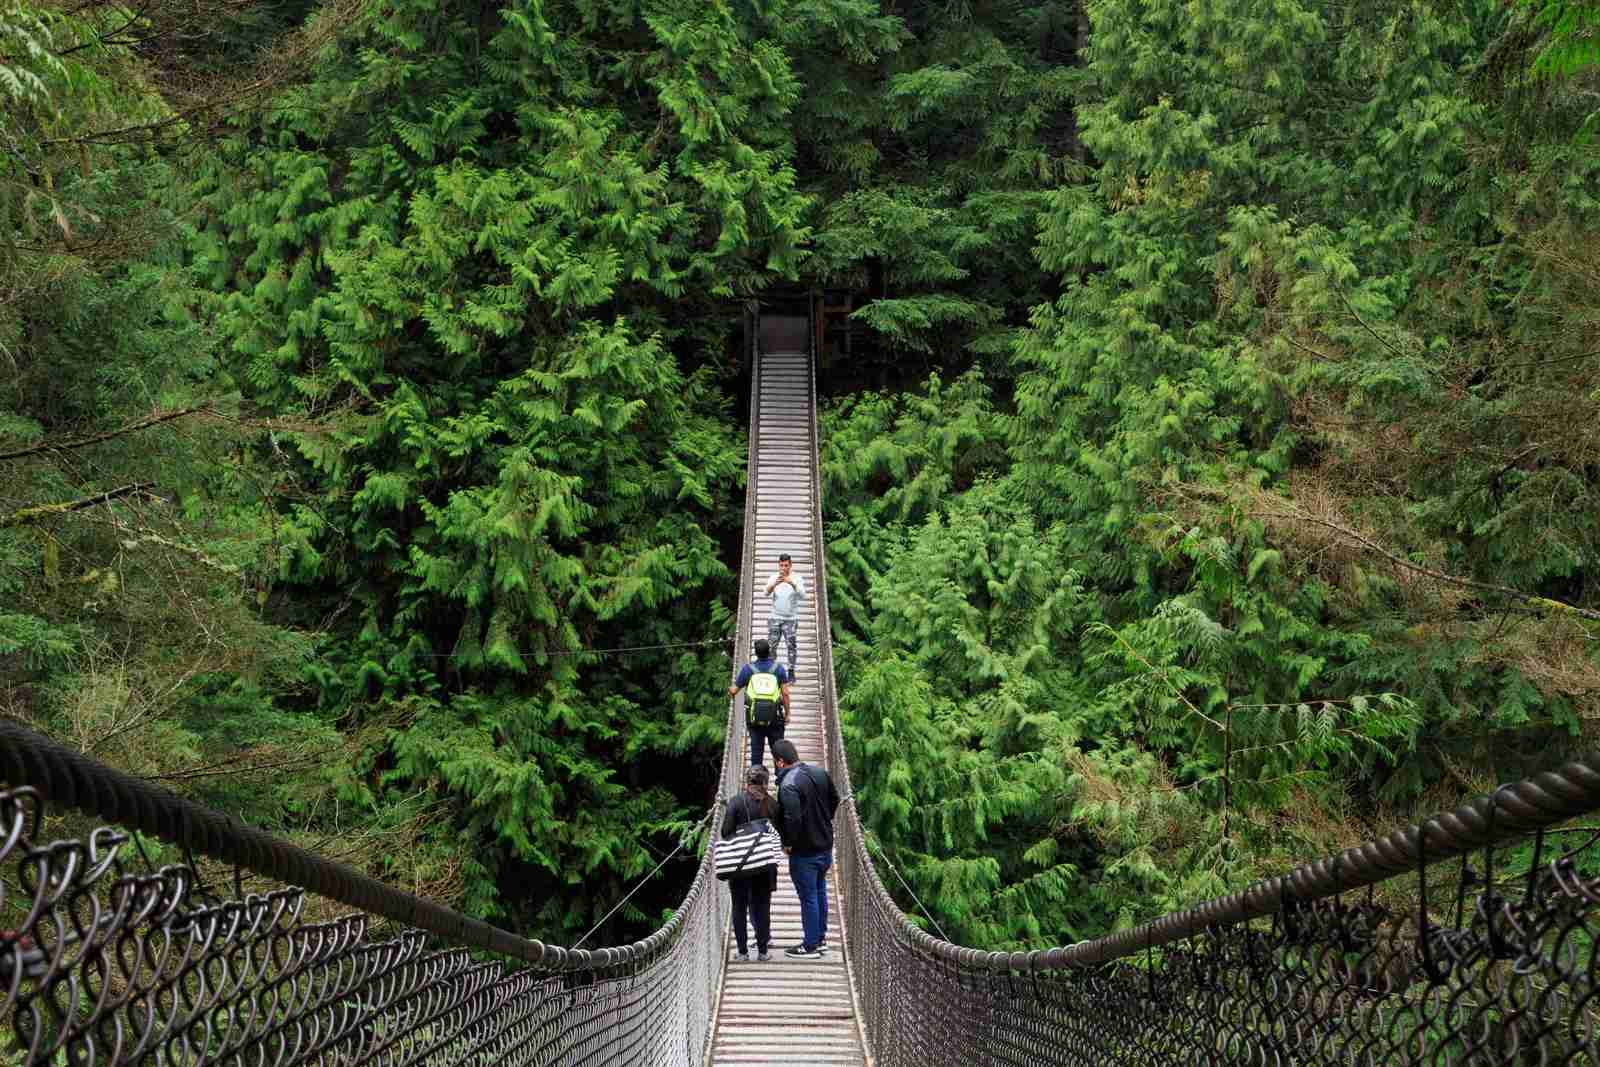 The Lynn Canyon Park Suspension Bridge in Vancouver. (Photo by Richard Cummins/Getty Images)